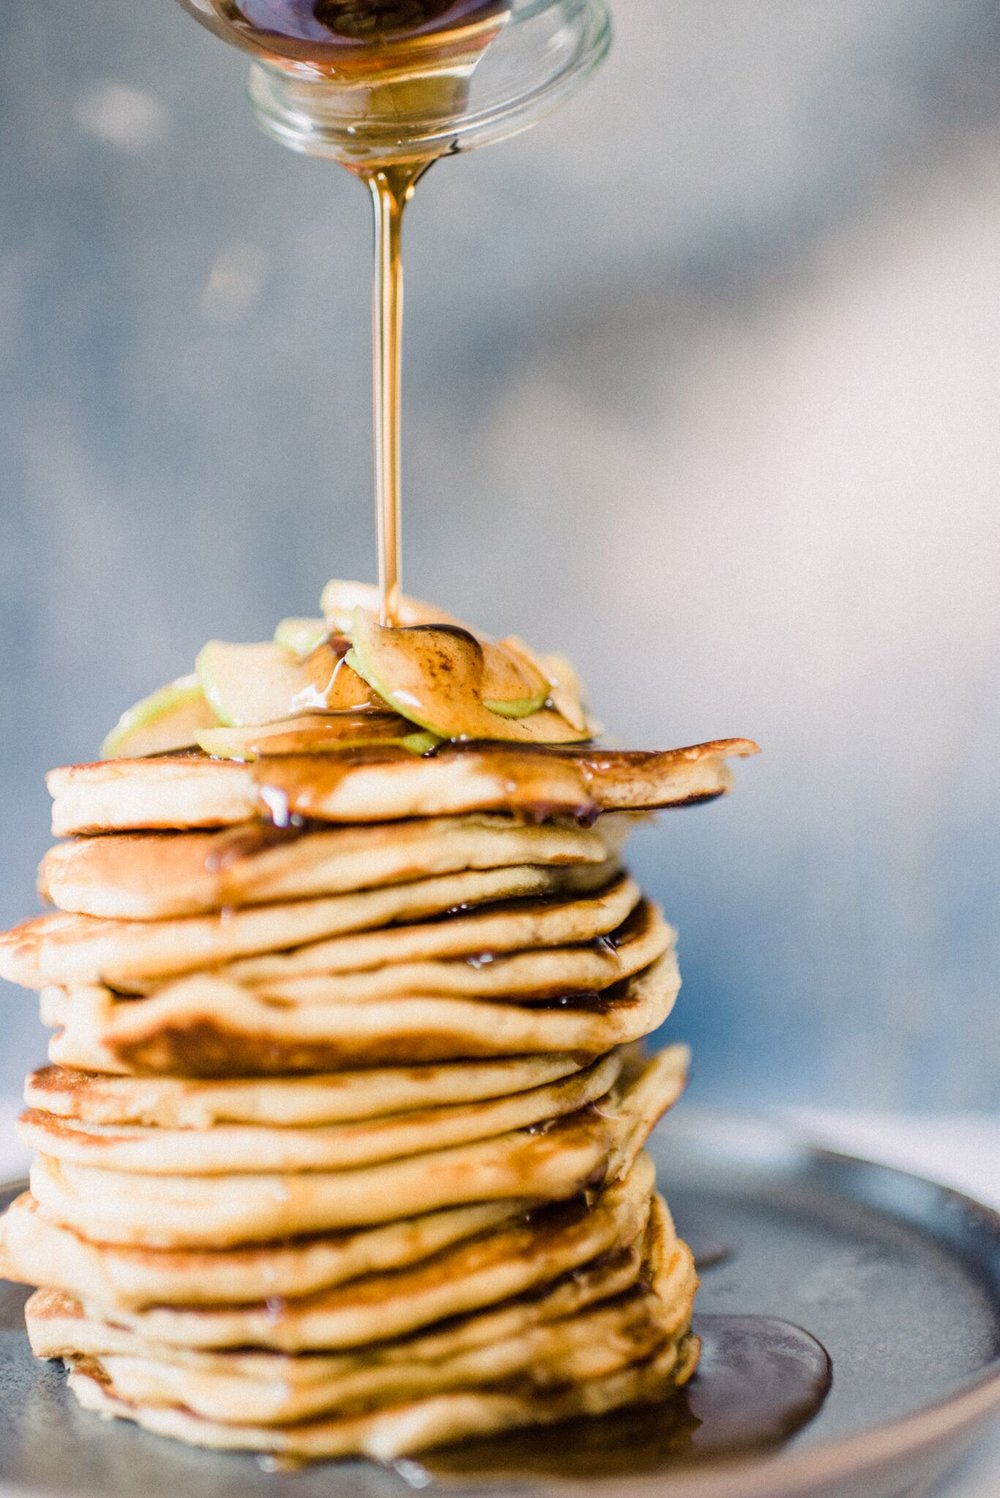 Maple syrup or honey pair perfectly with these apple pancakes.